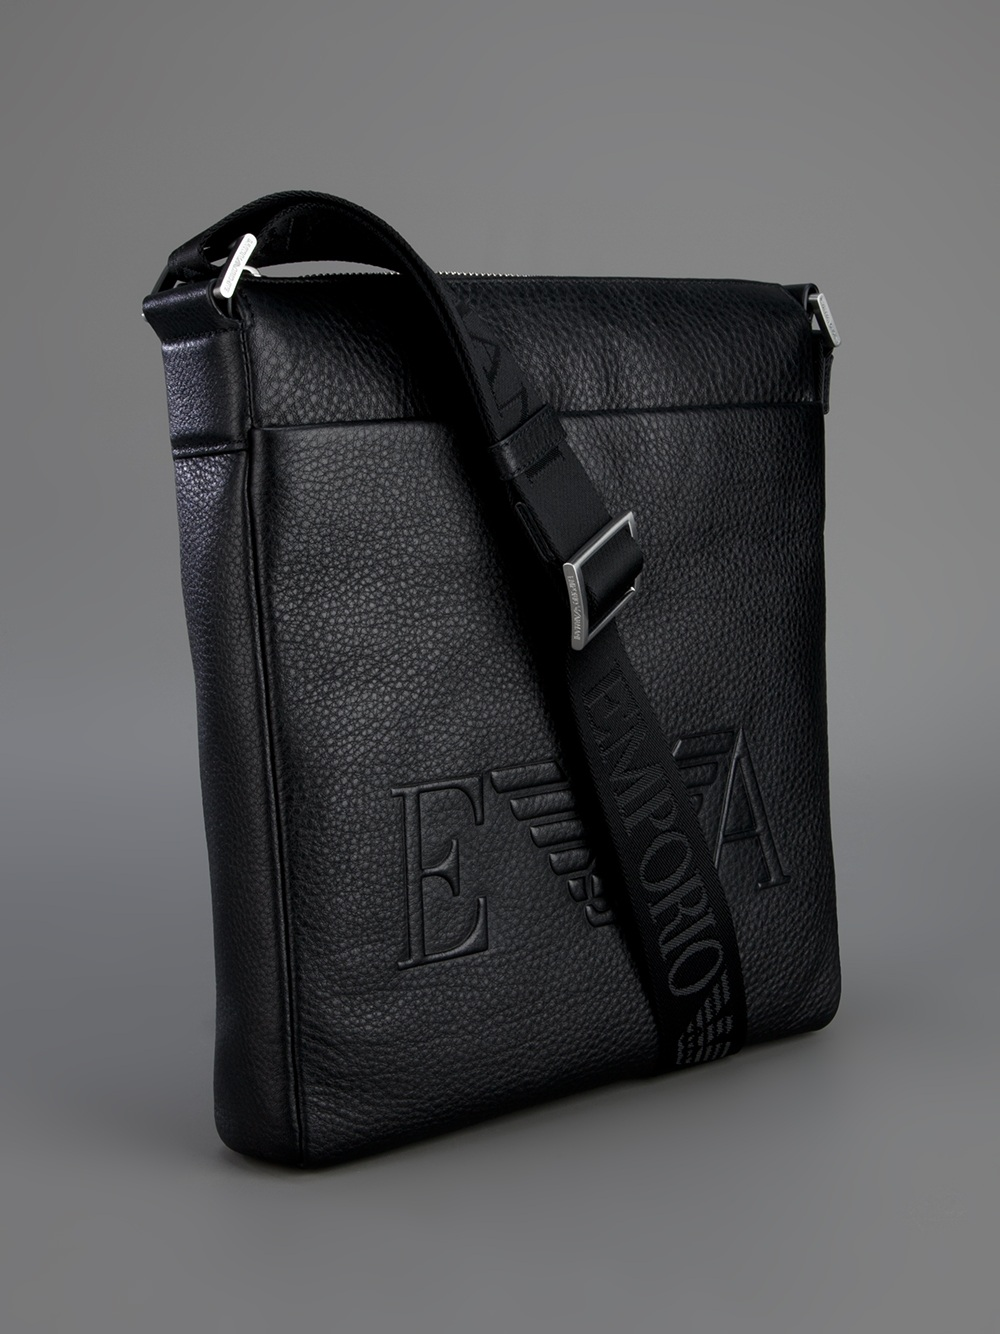 ab970cdd60f9 Emporio Armani Messenger Bag in Black for Men - Lyst